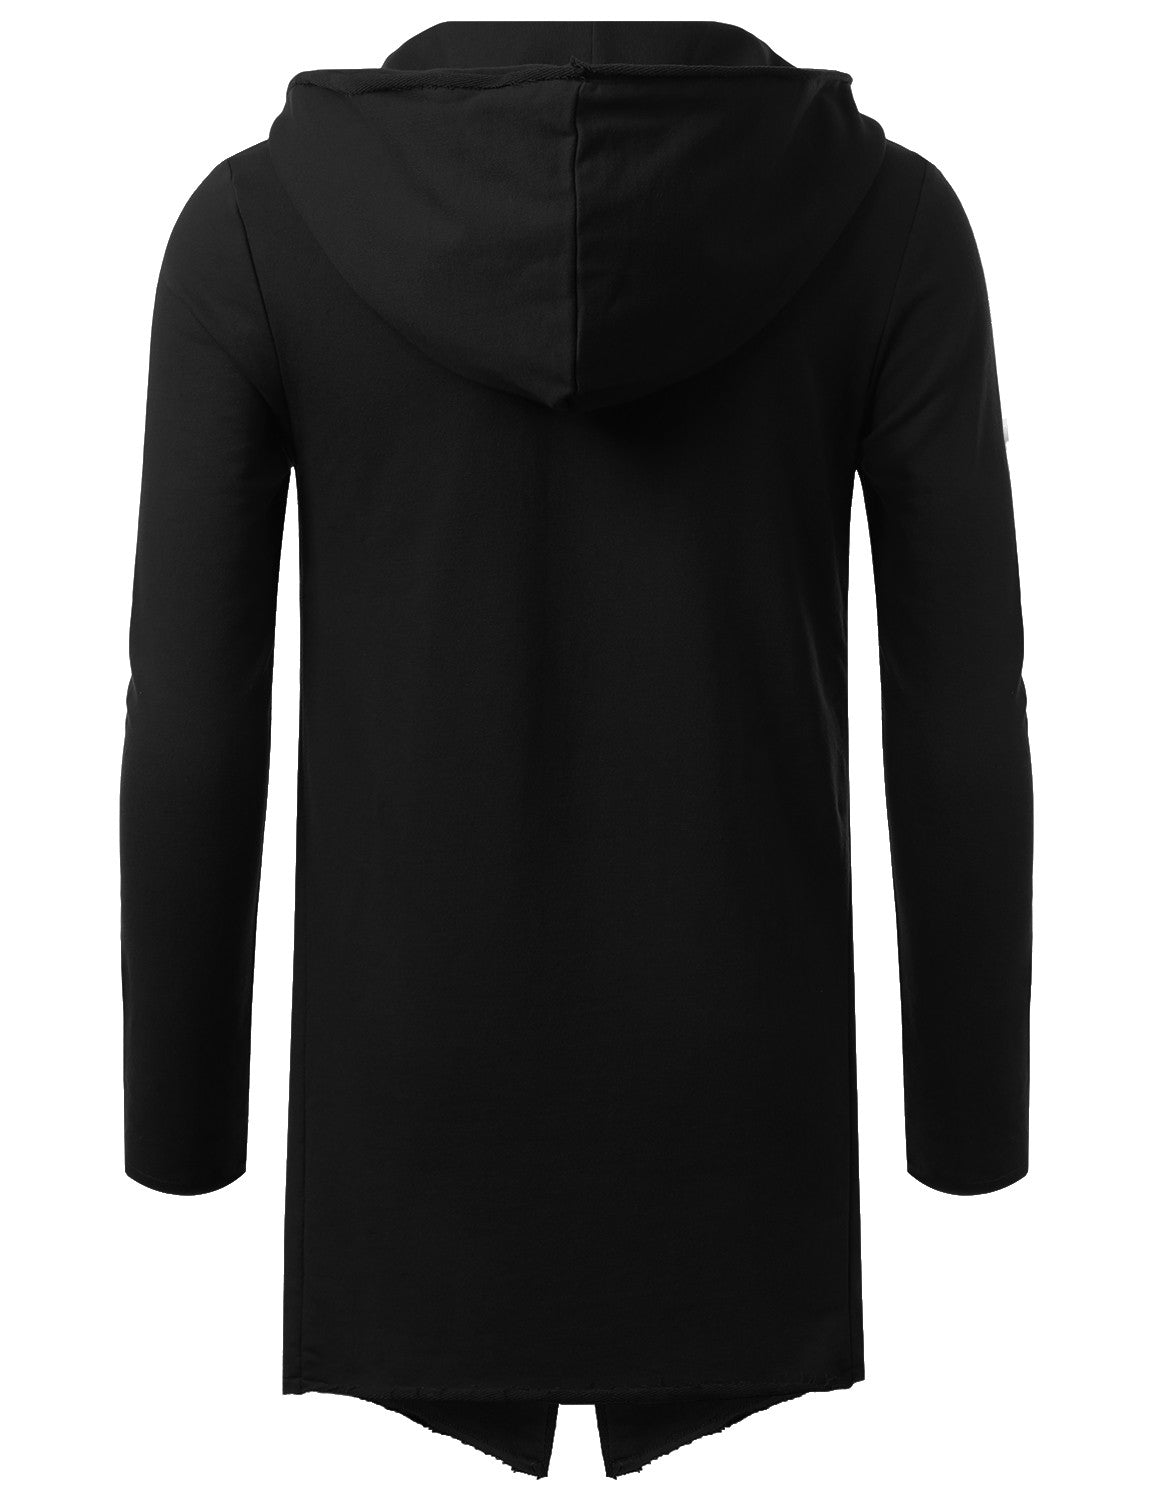 BLACK French Terry Hooded Cardigan Cape - URBANCREWS